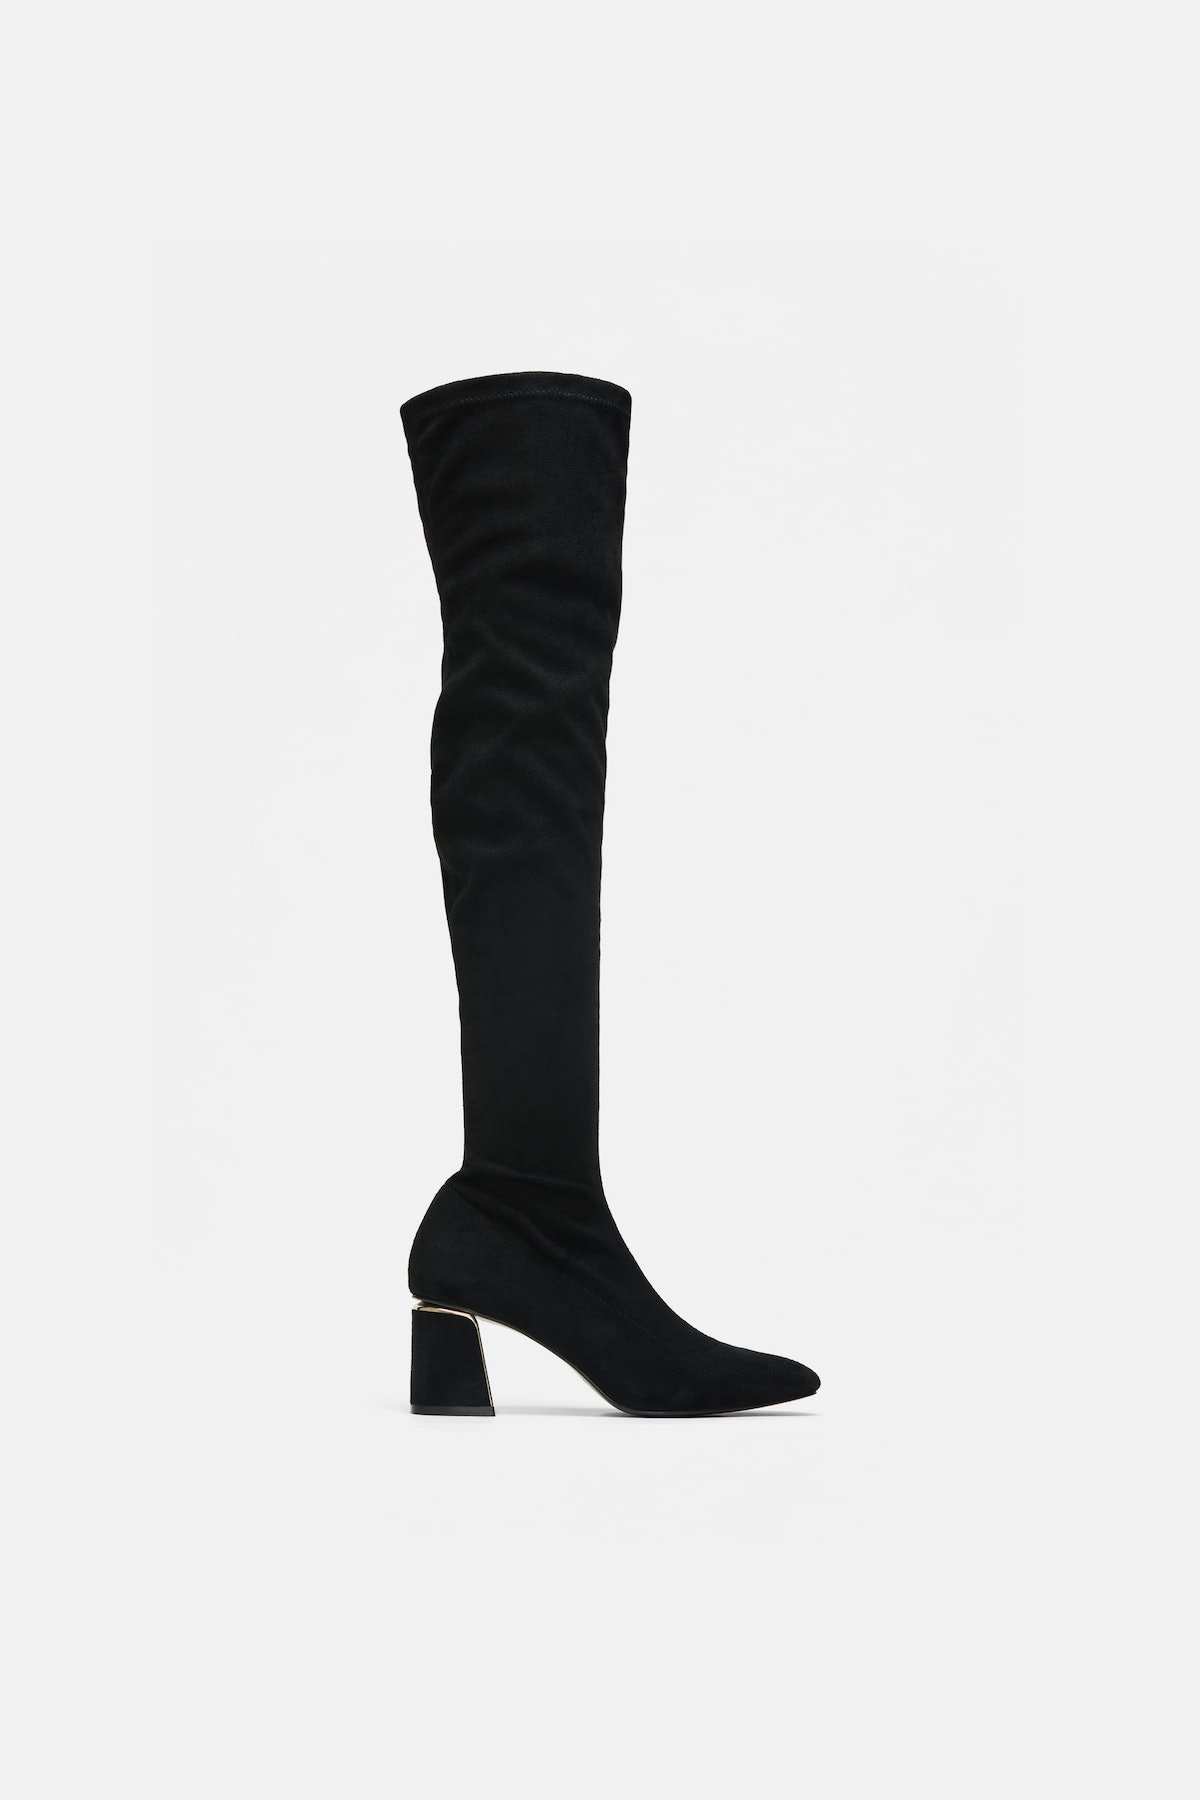 Over-The-Knee Heeled Boots